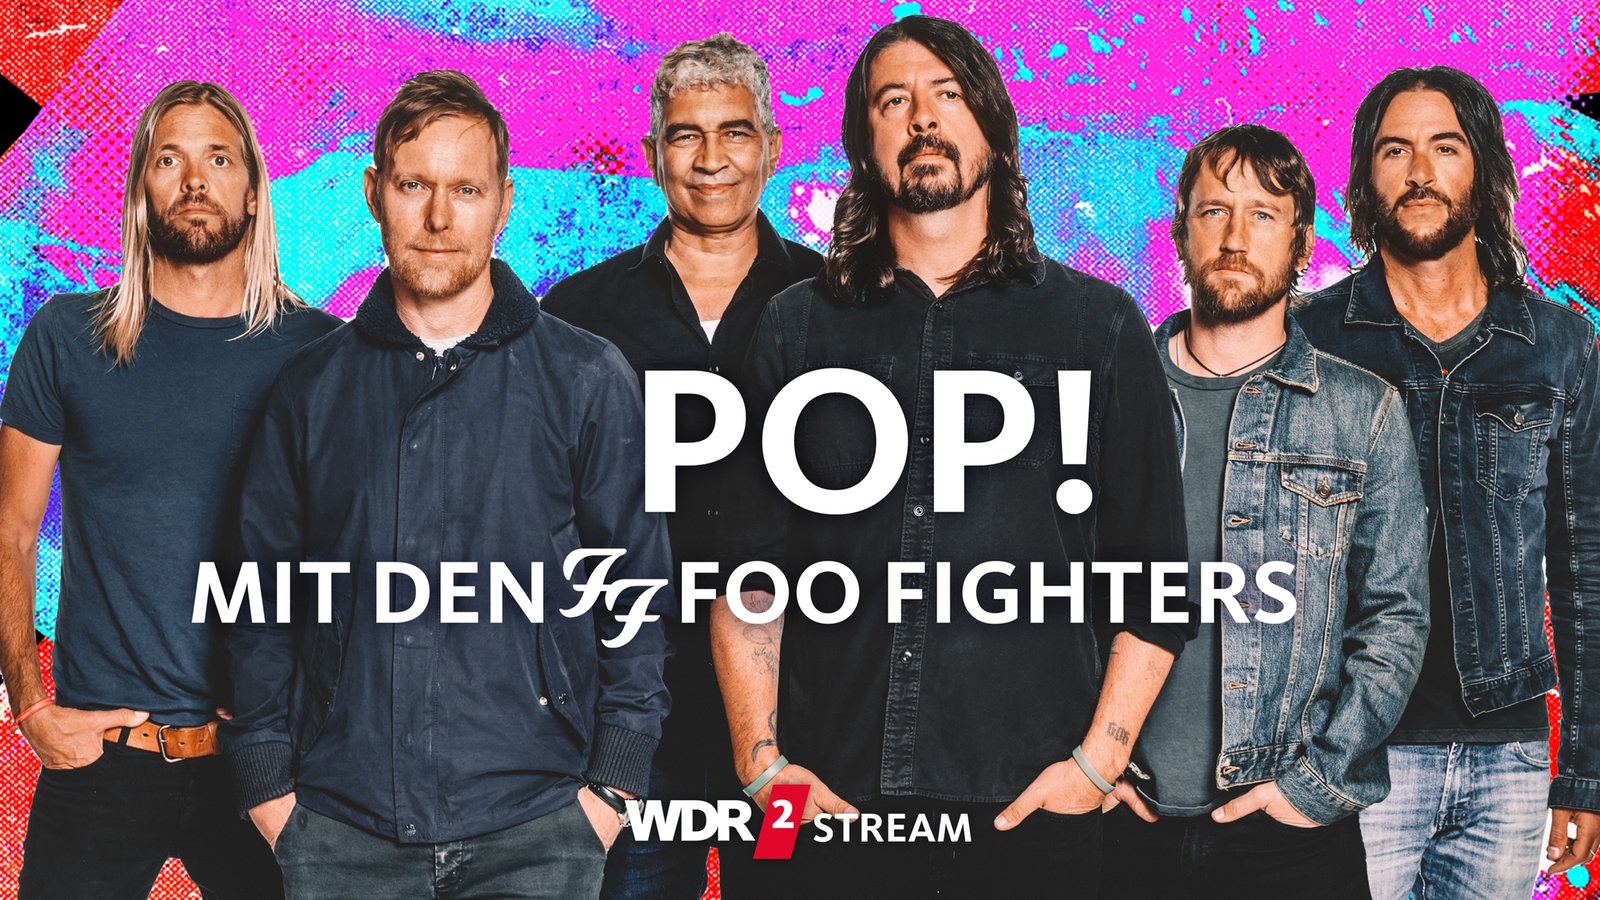 Die Radioshow mit den Foo Fighters